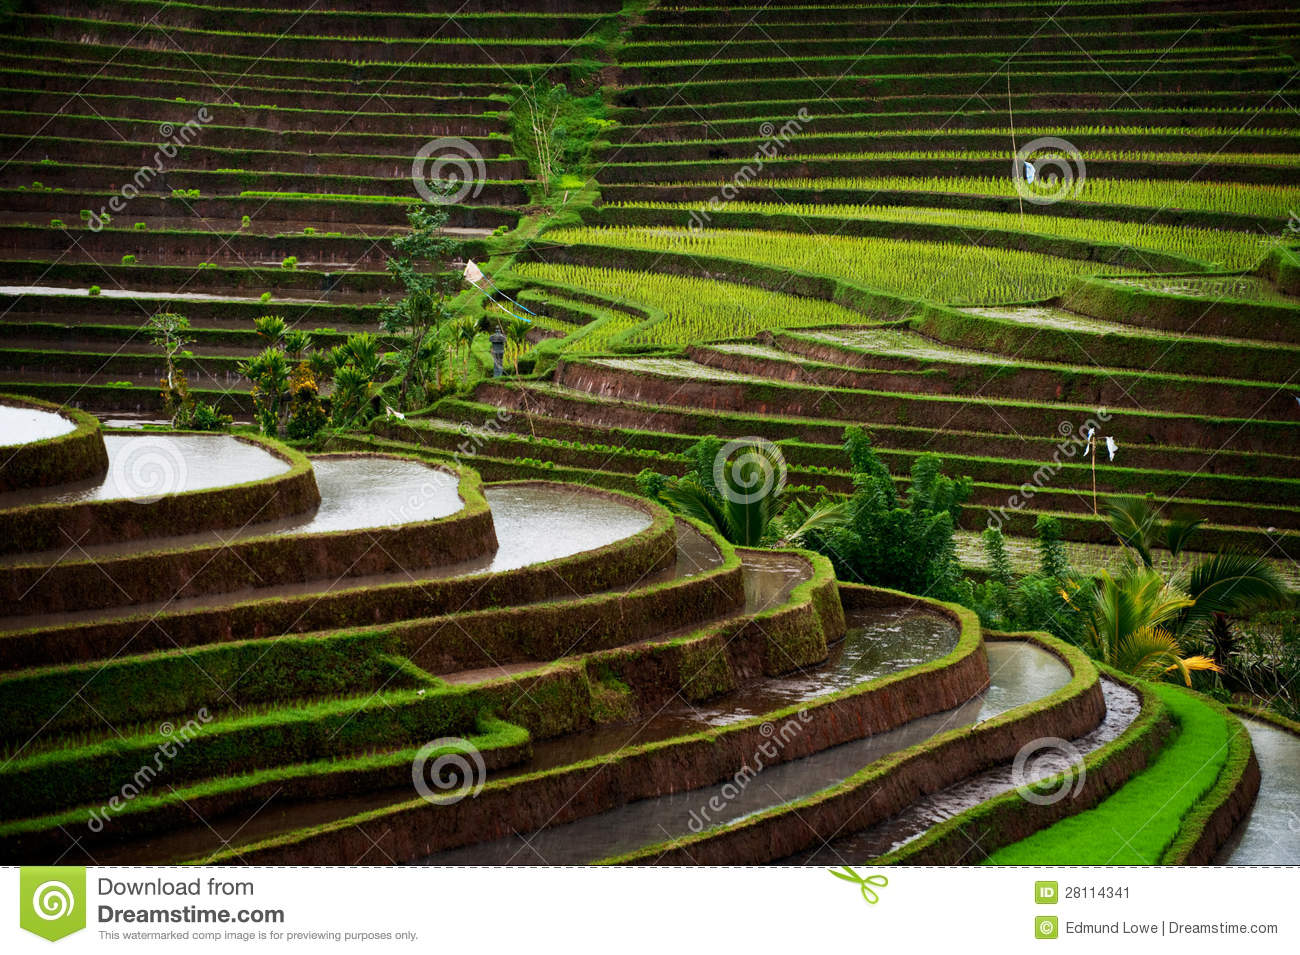 Download Bali Rice Field stock image. Image of exotic, green, background - 28114341